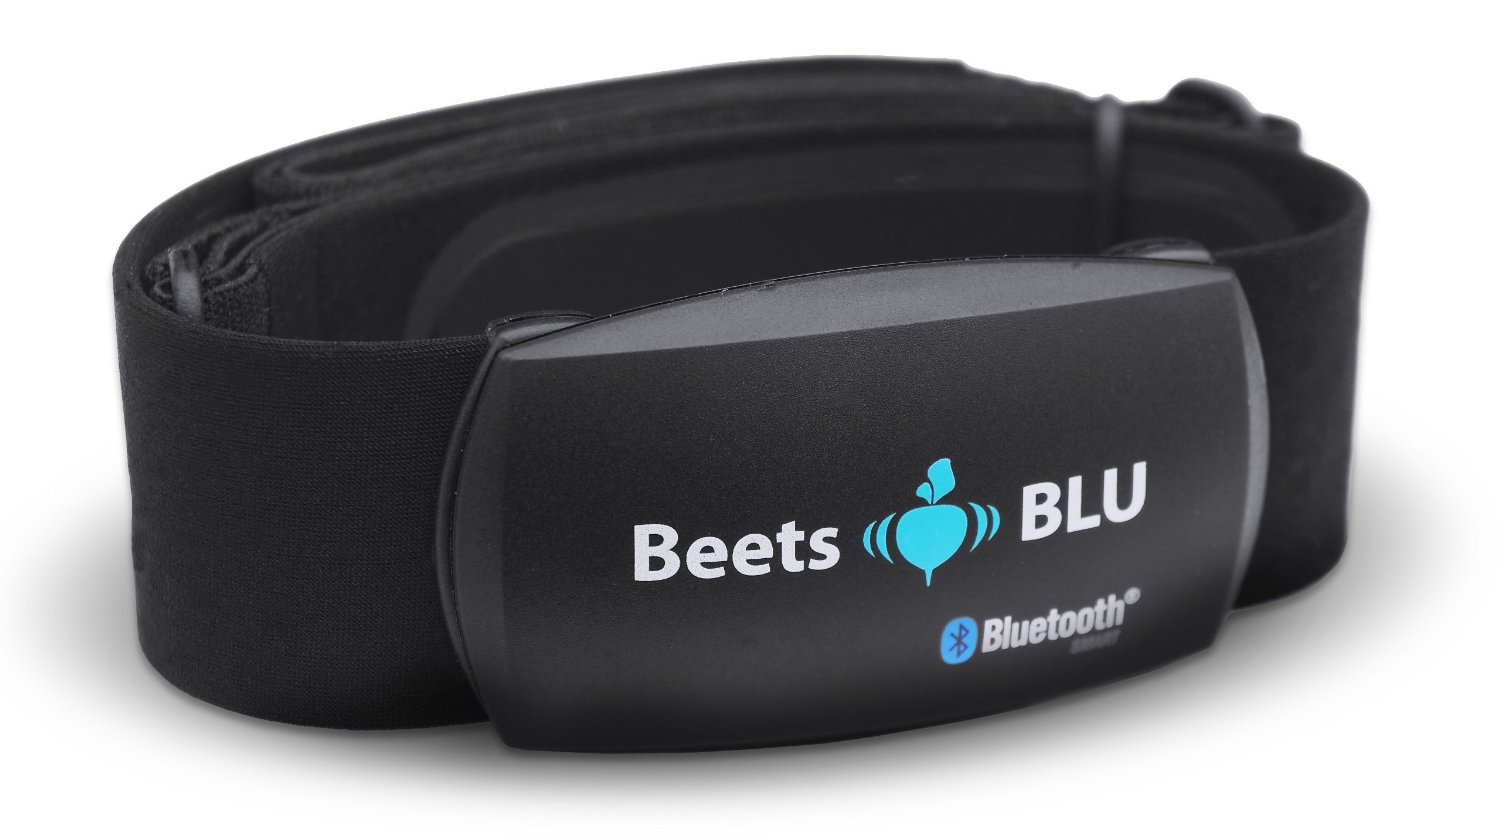 Beets BLU Bluetooth Wireless Heart Rate Monitor with Chest Strap